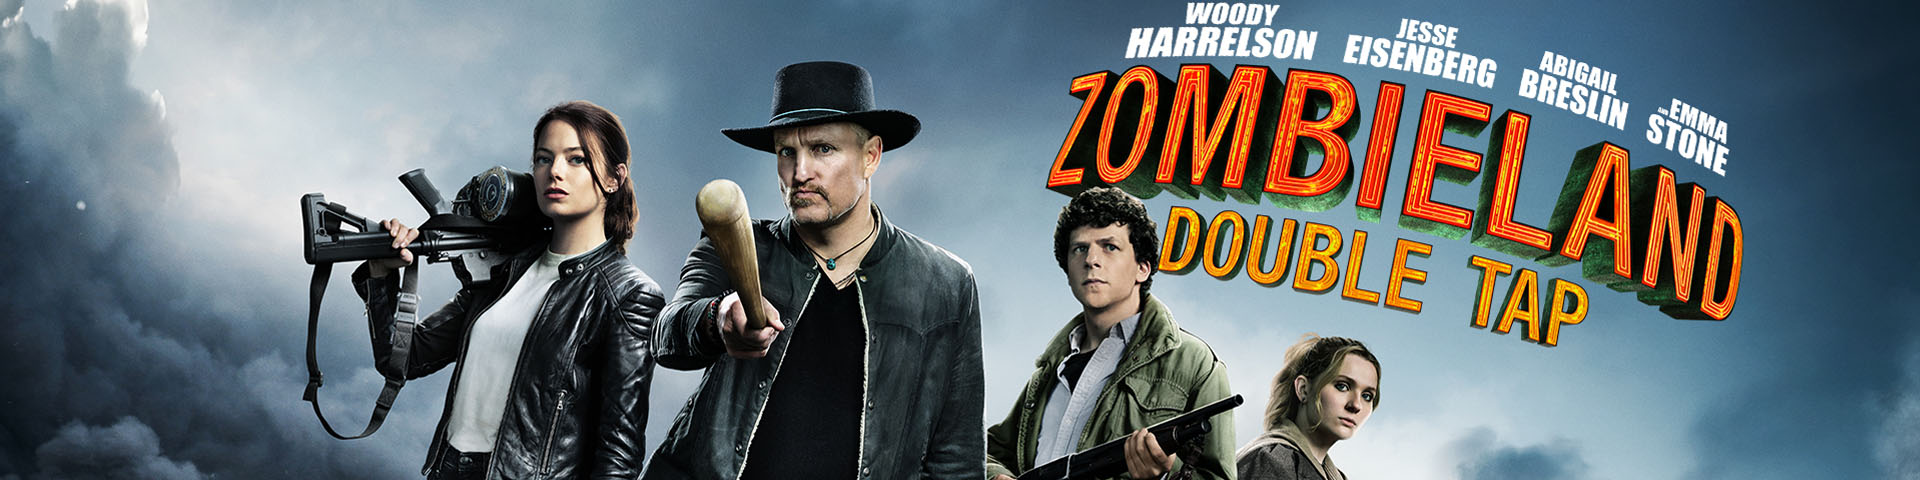 Zombieland Double Tap banner